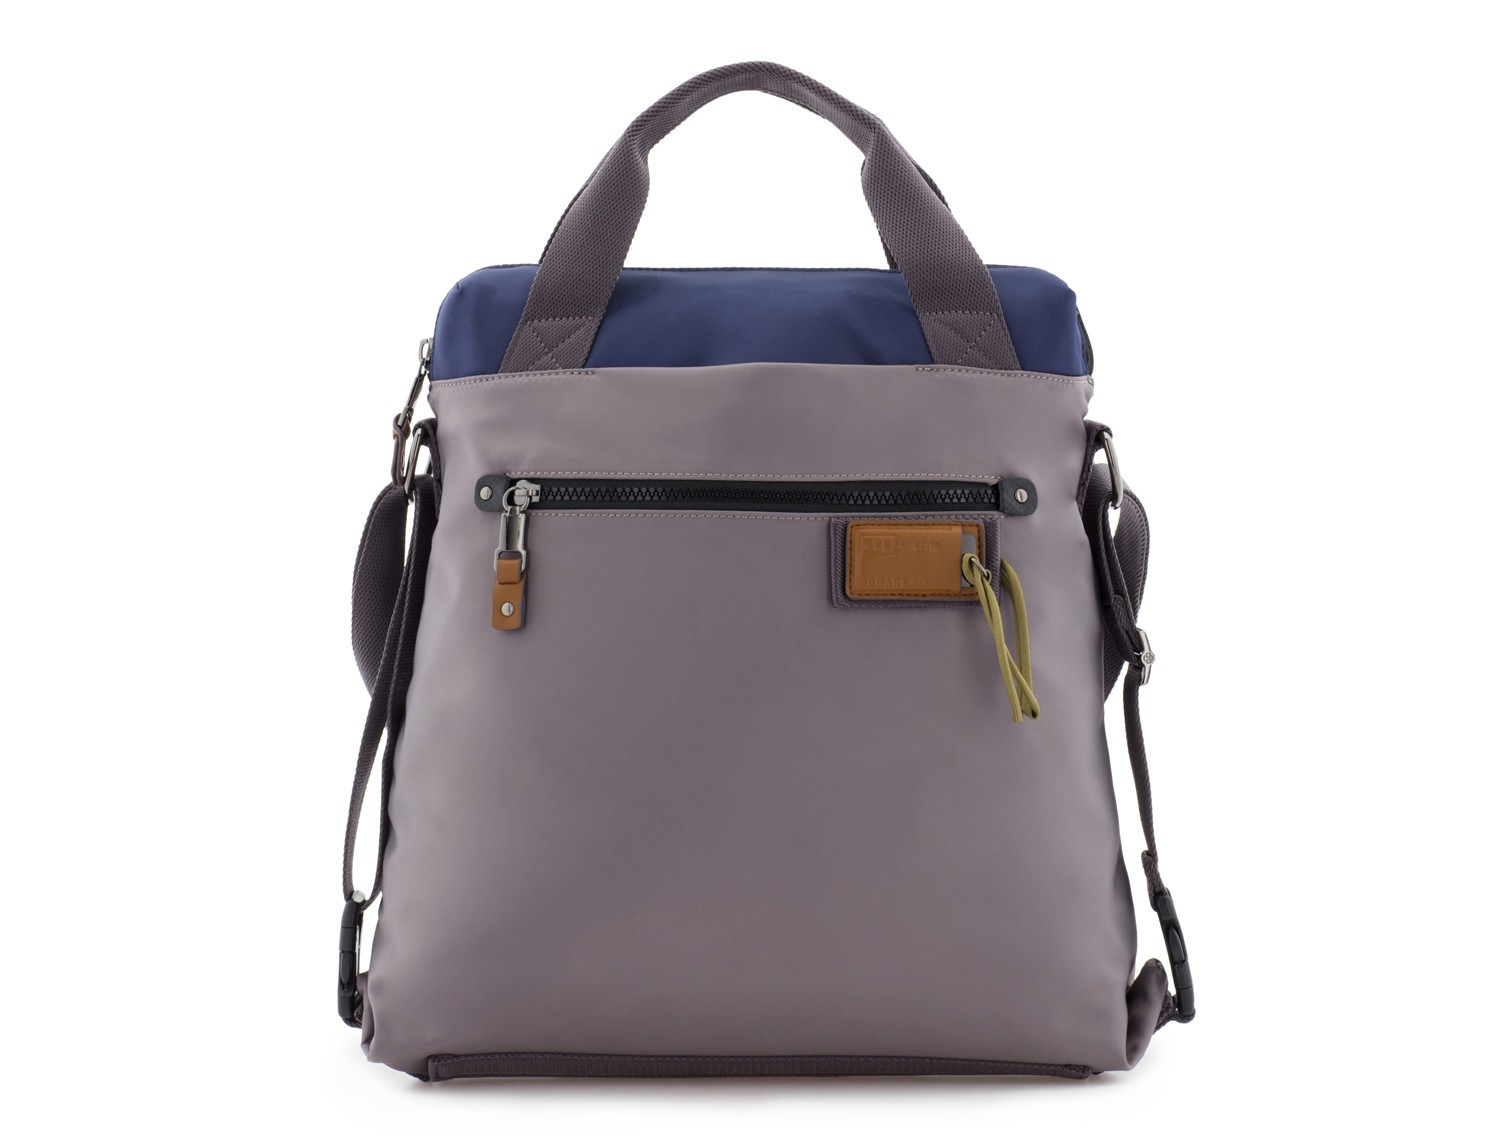 Bag convertible into backpack in gray front